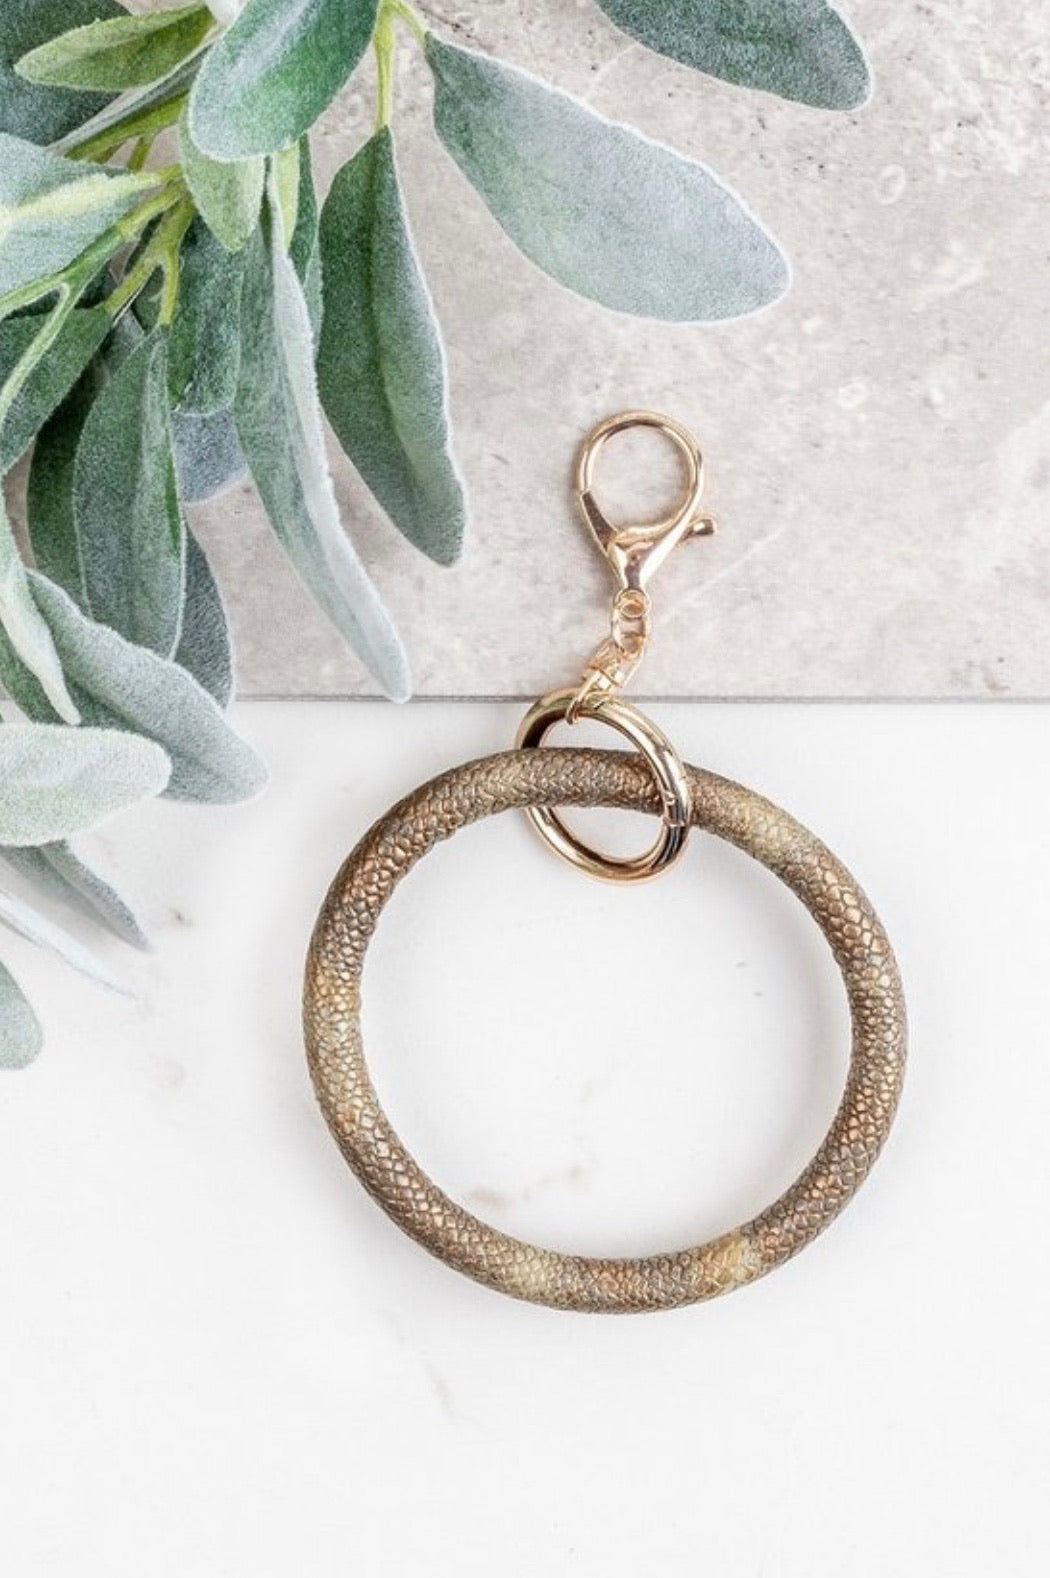 Snakeskin Key Ring Bangle